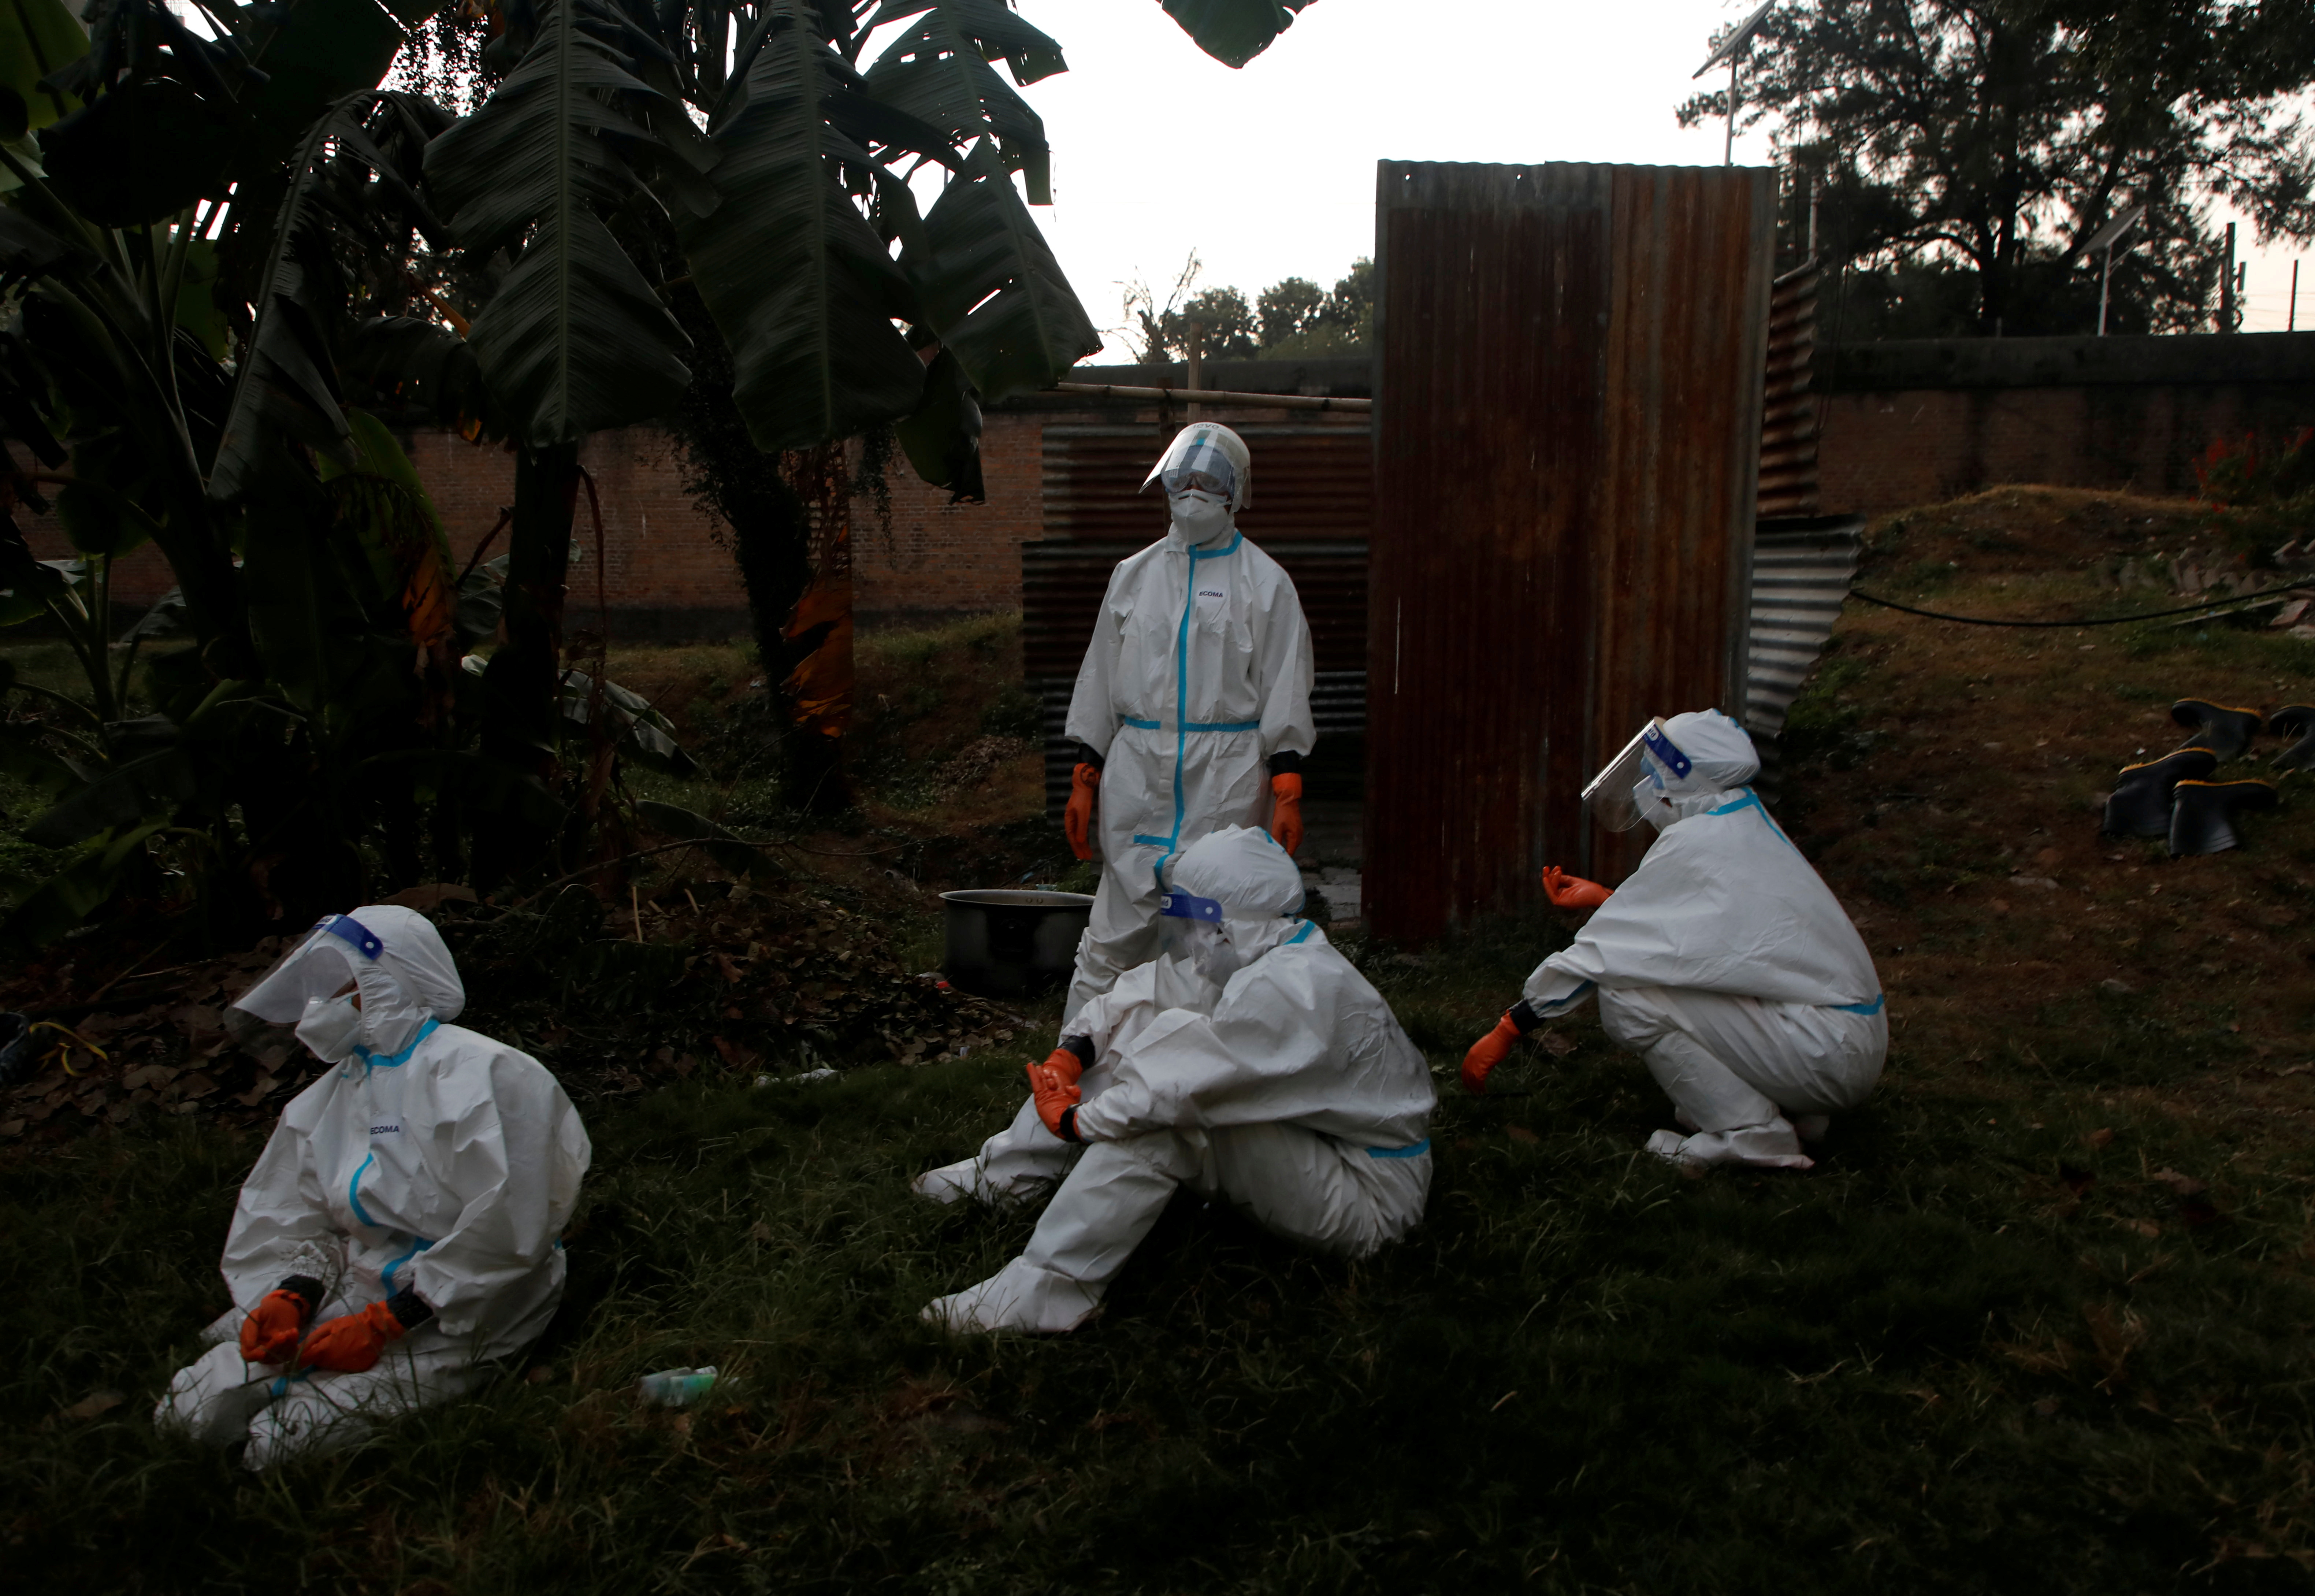 Female soldiers wearing personal protective equipment (PPE) take rest after handling bodies of coronavirus victims, amidst the spread of the coronavirus disease (COVID-19), in Kathmandu, Nepal November 11, 2020. Photo: Reuters